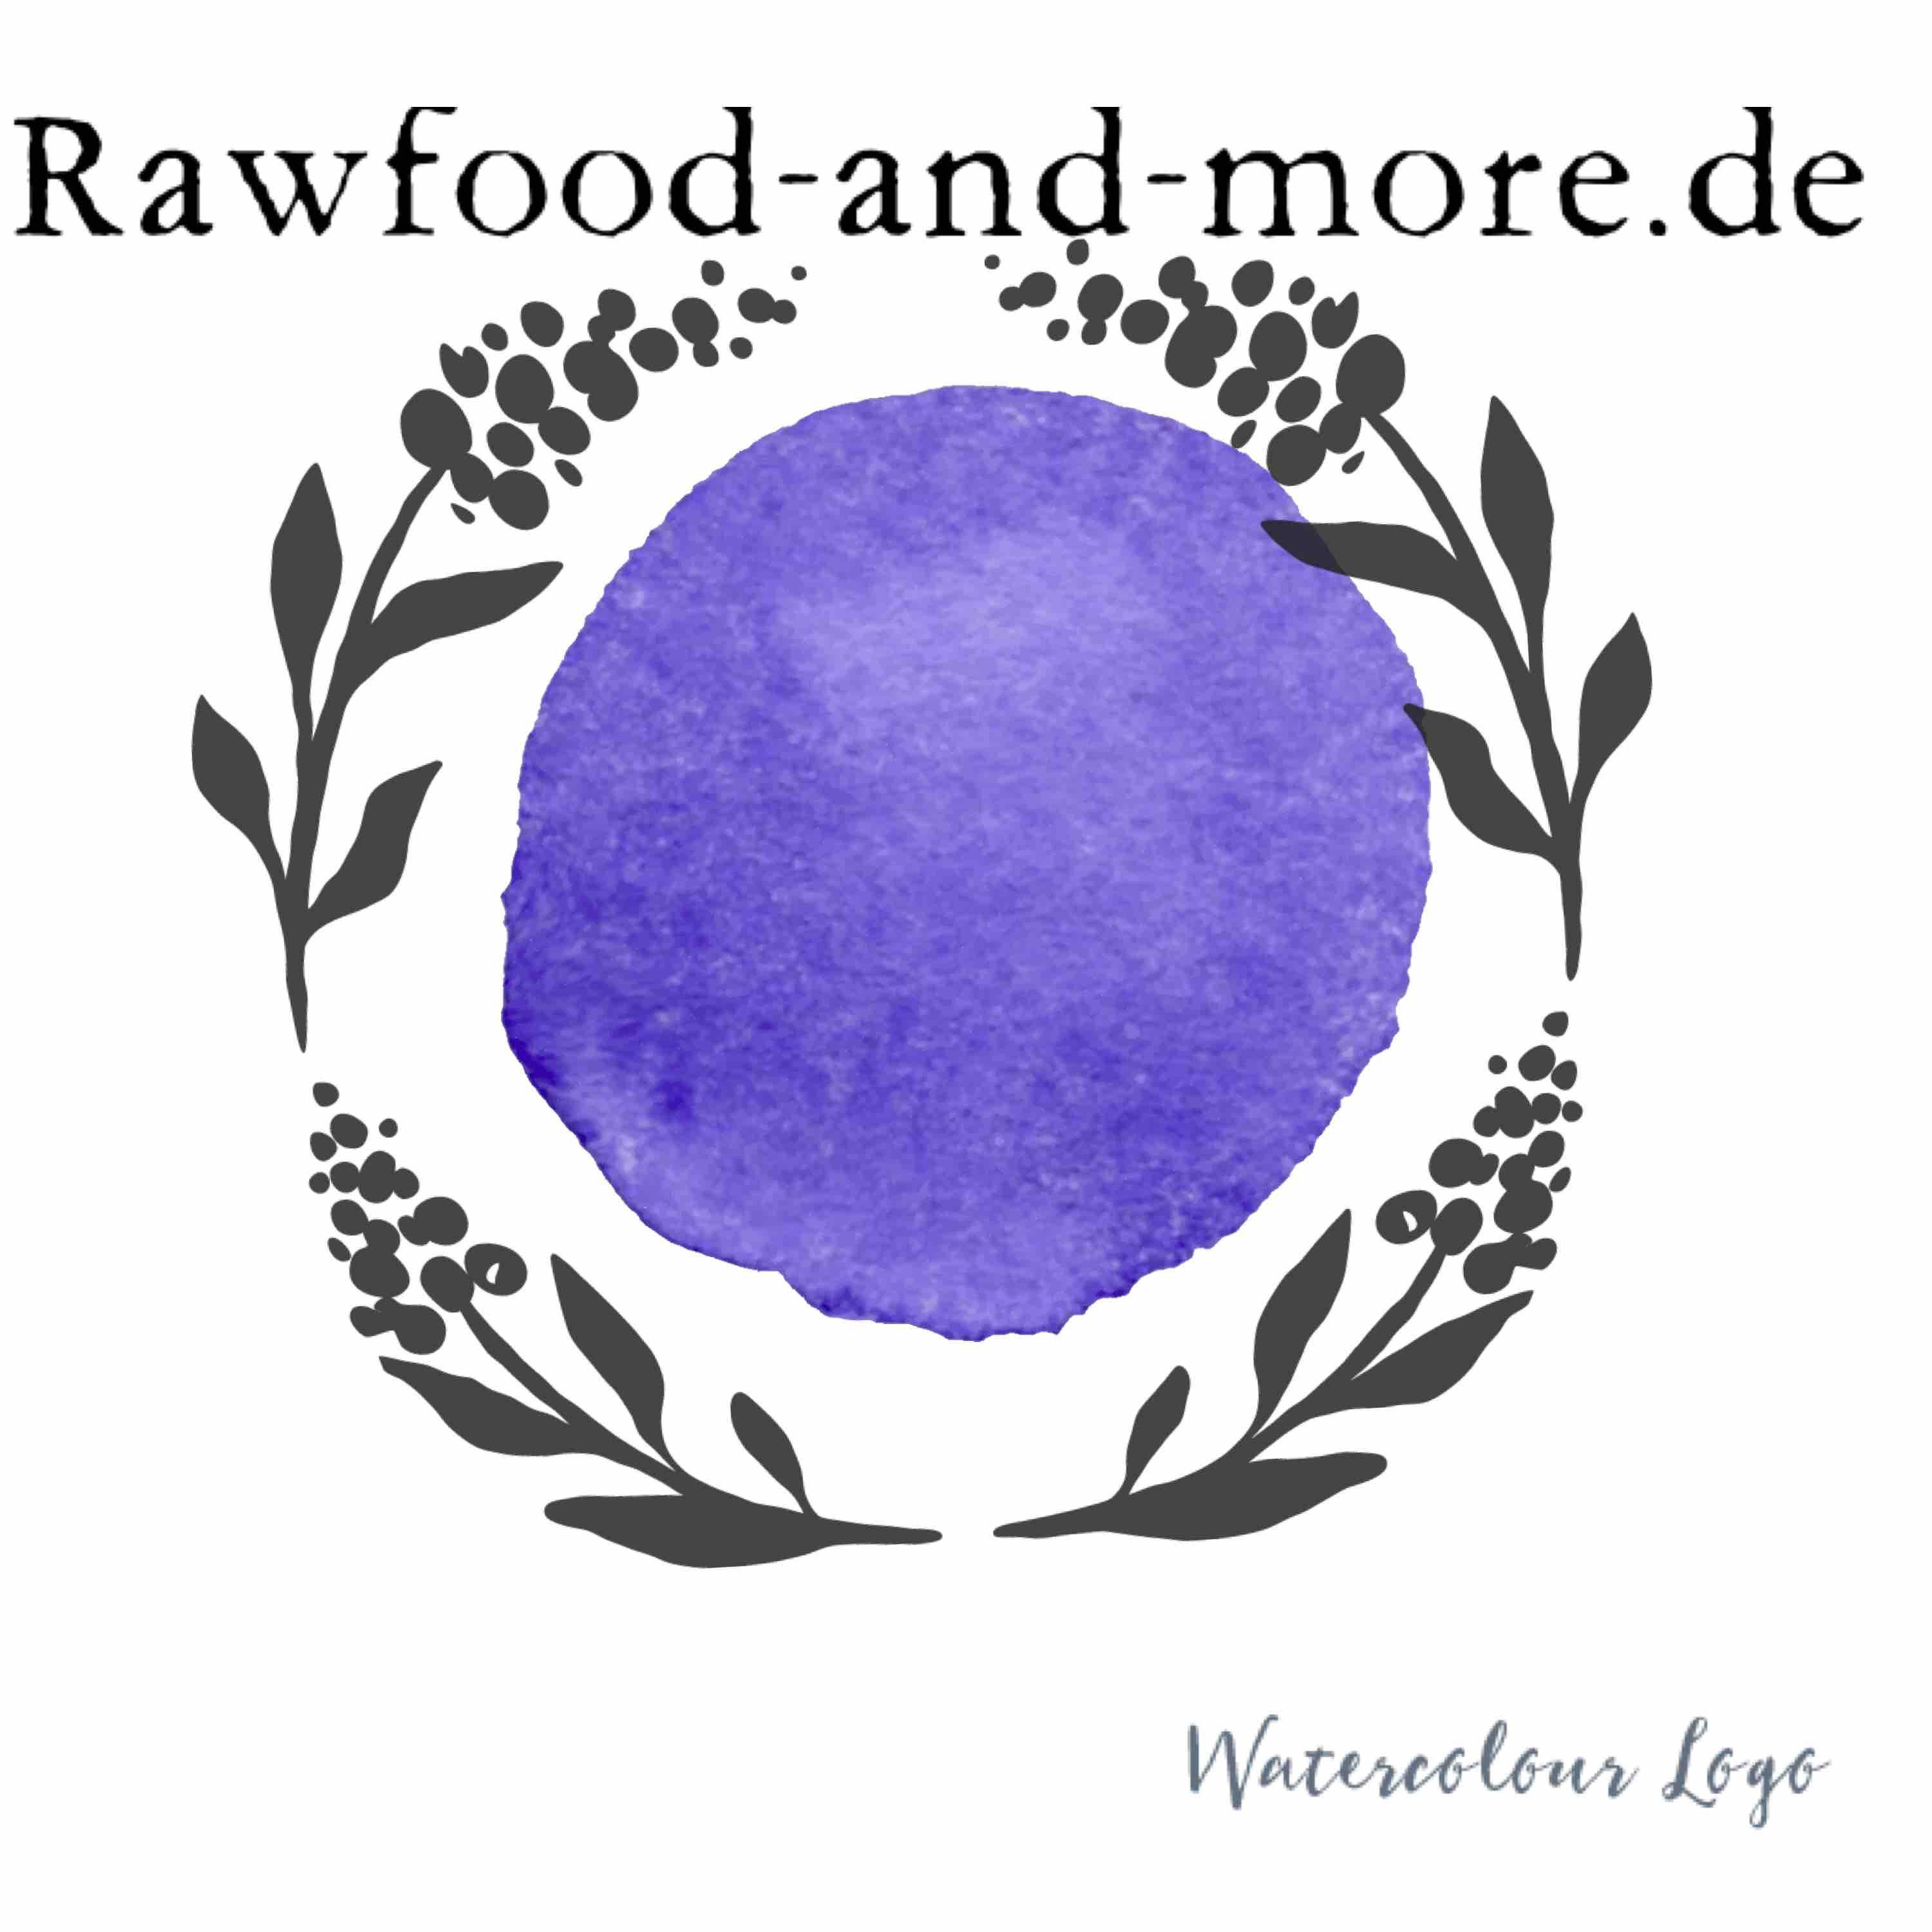 rawfood-and-more logo